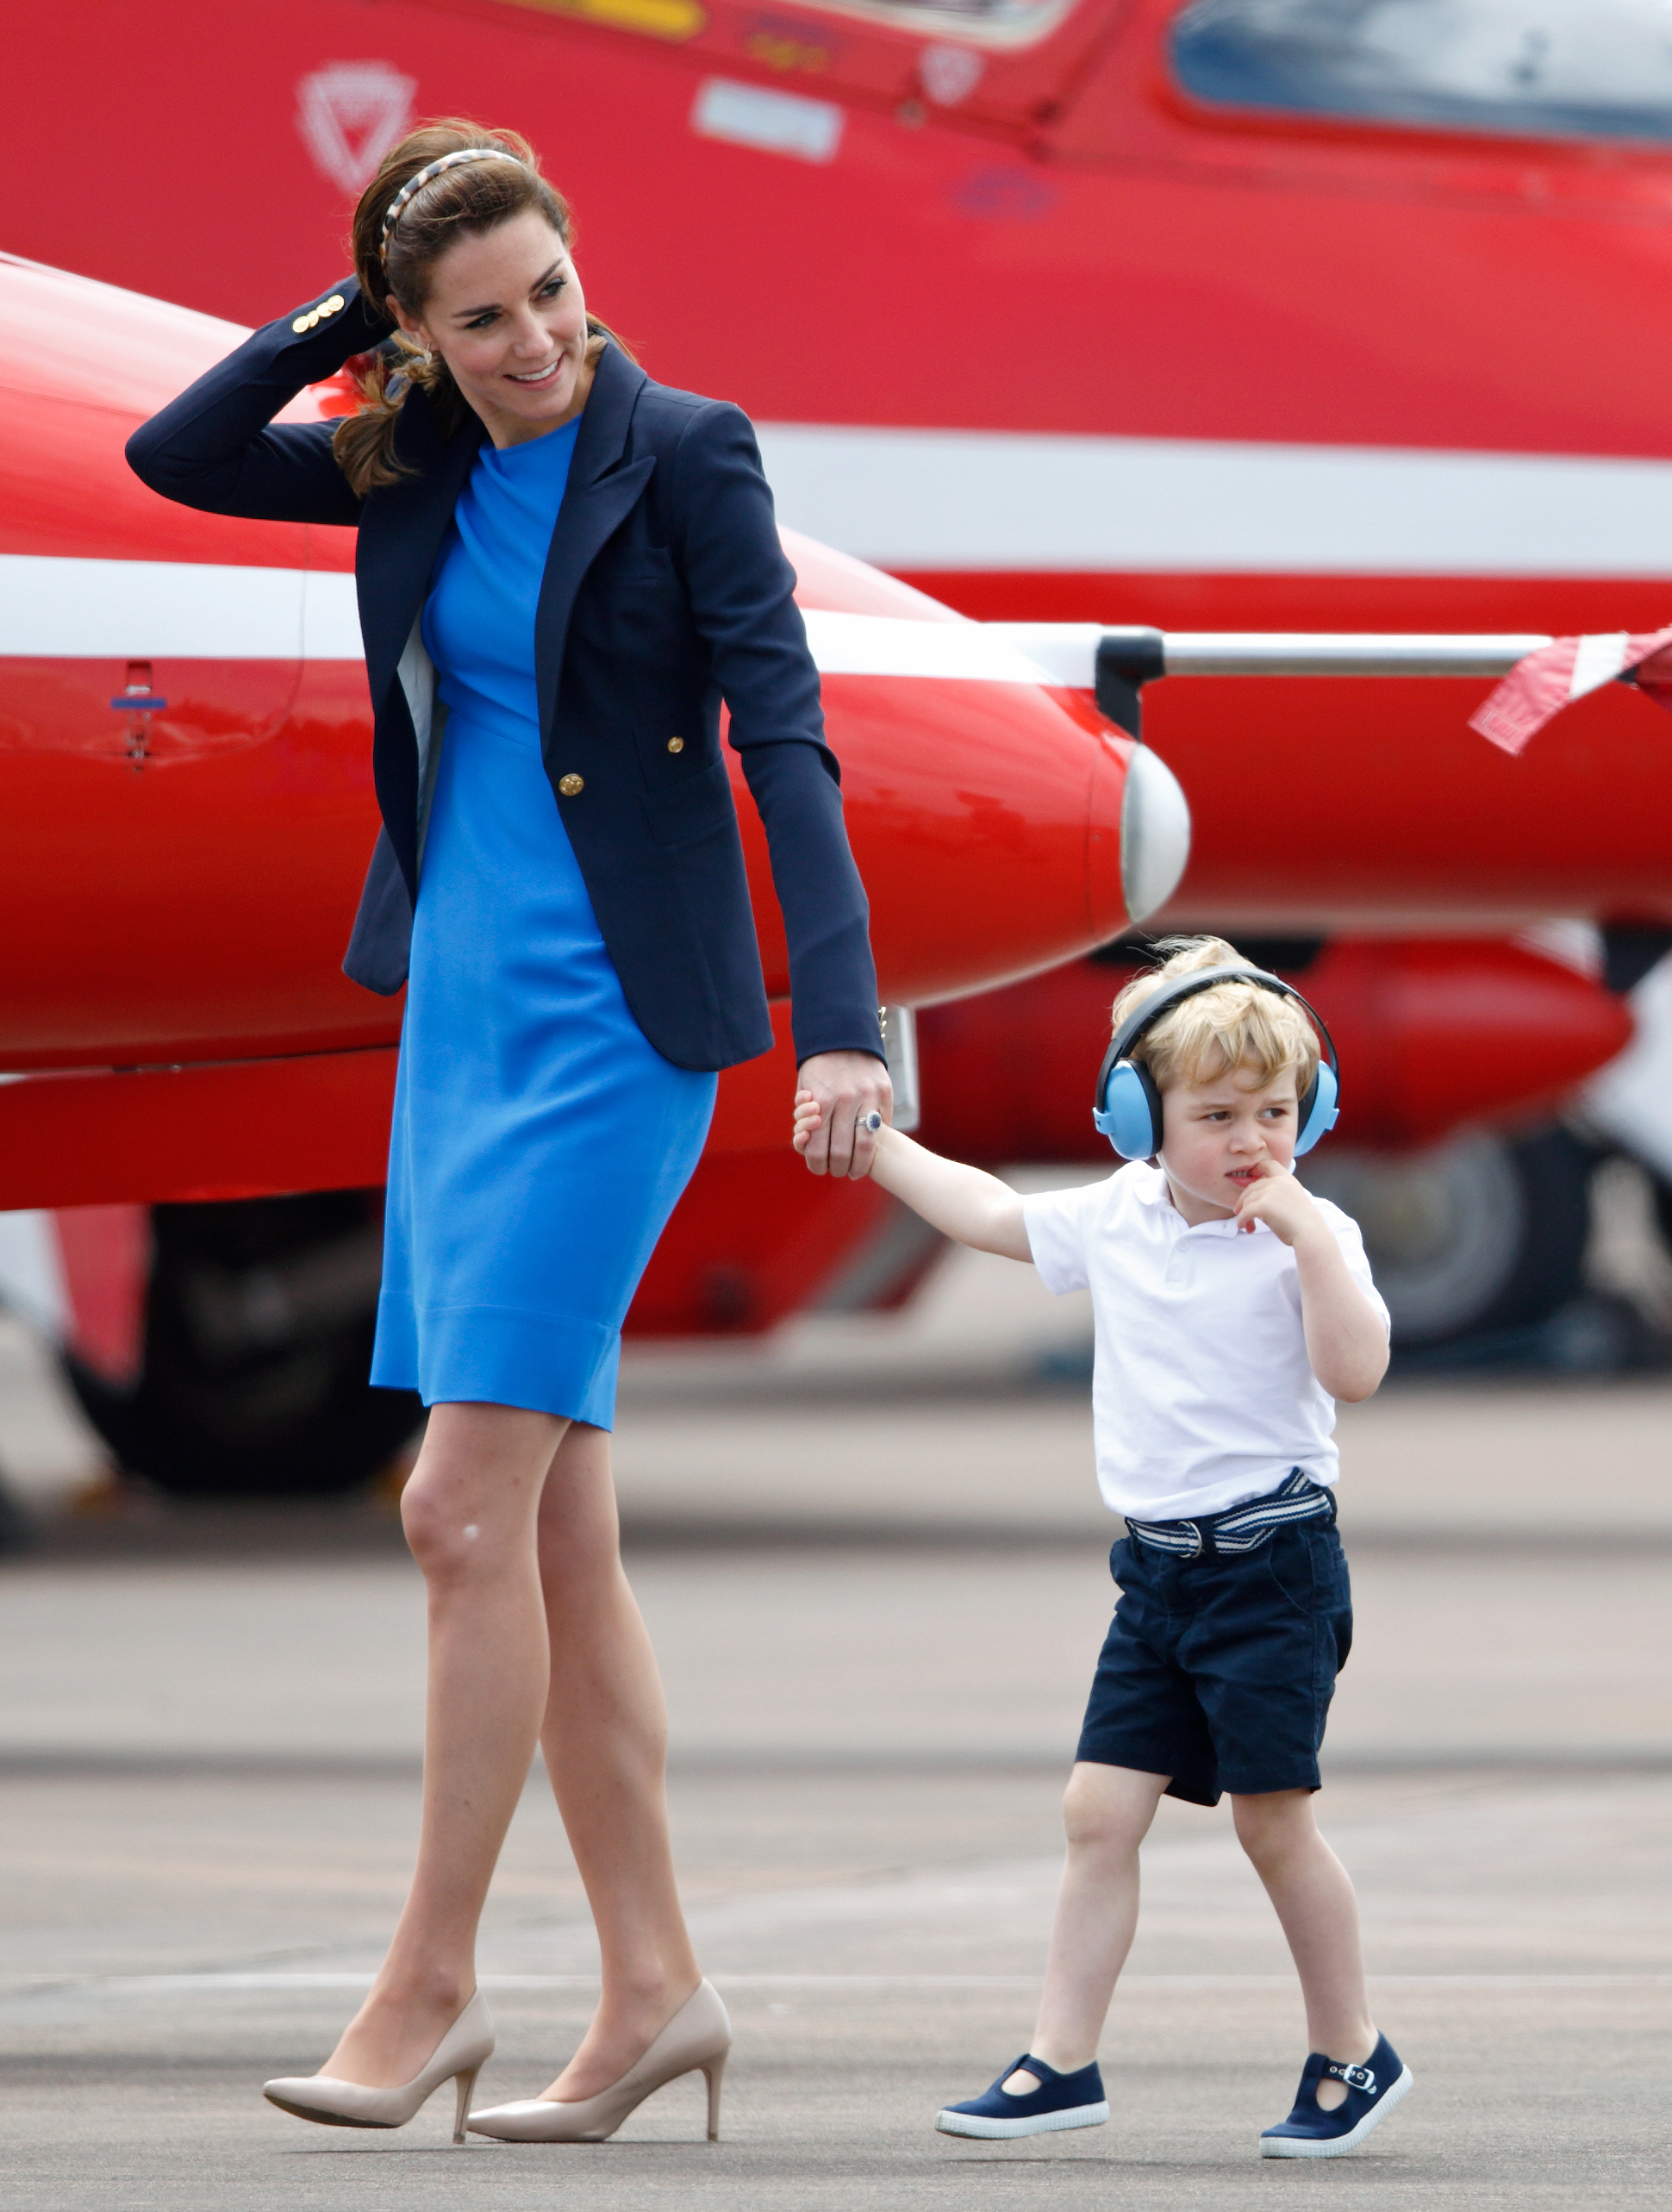 Catherine, Duchess of Cambridge and Prince George of Cambridge visit the Royal International Air Tattoo at RAF Fairford, England, on July 8, 2016.